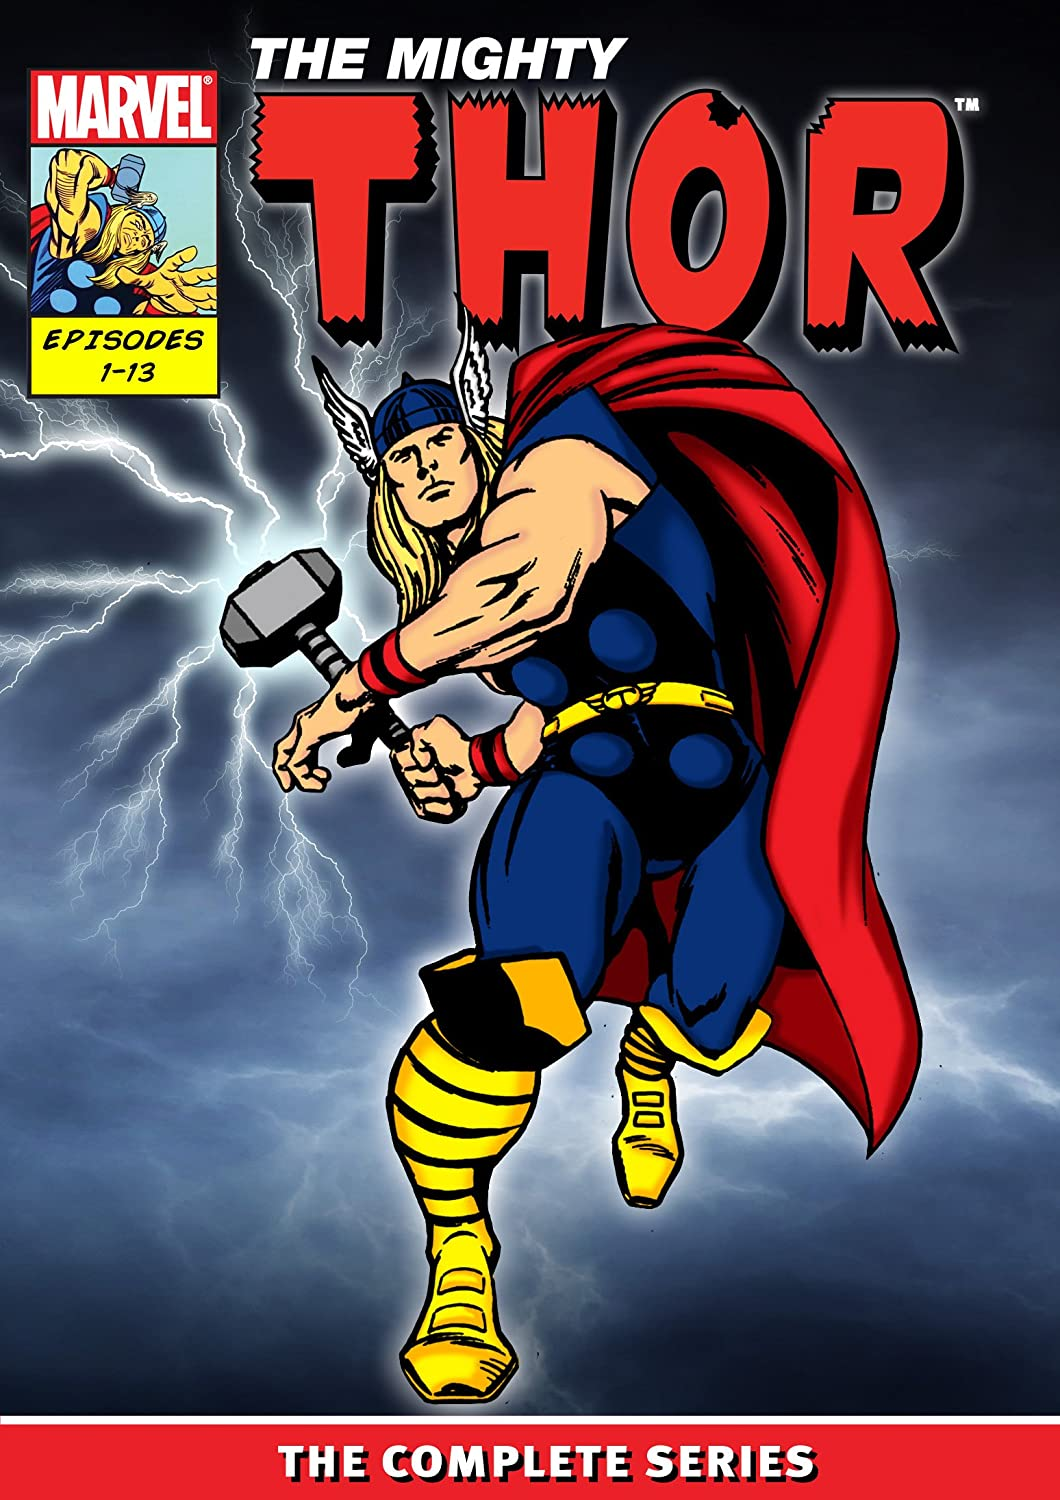 The Mighty Thor The Complete 1966 Series Marvel Super Heroes